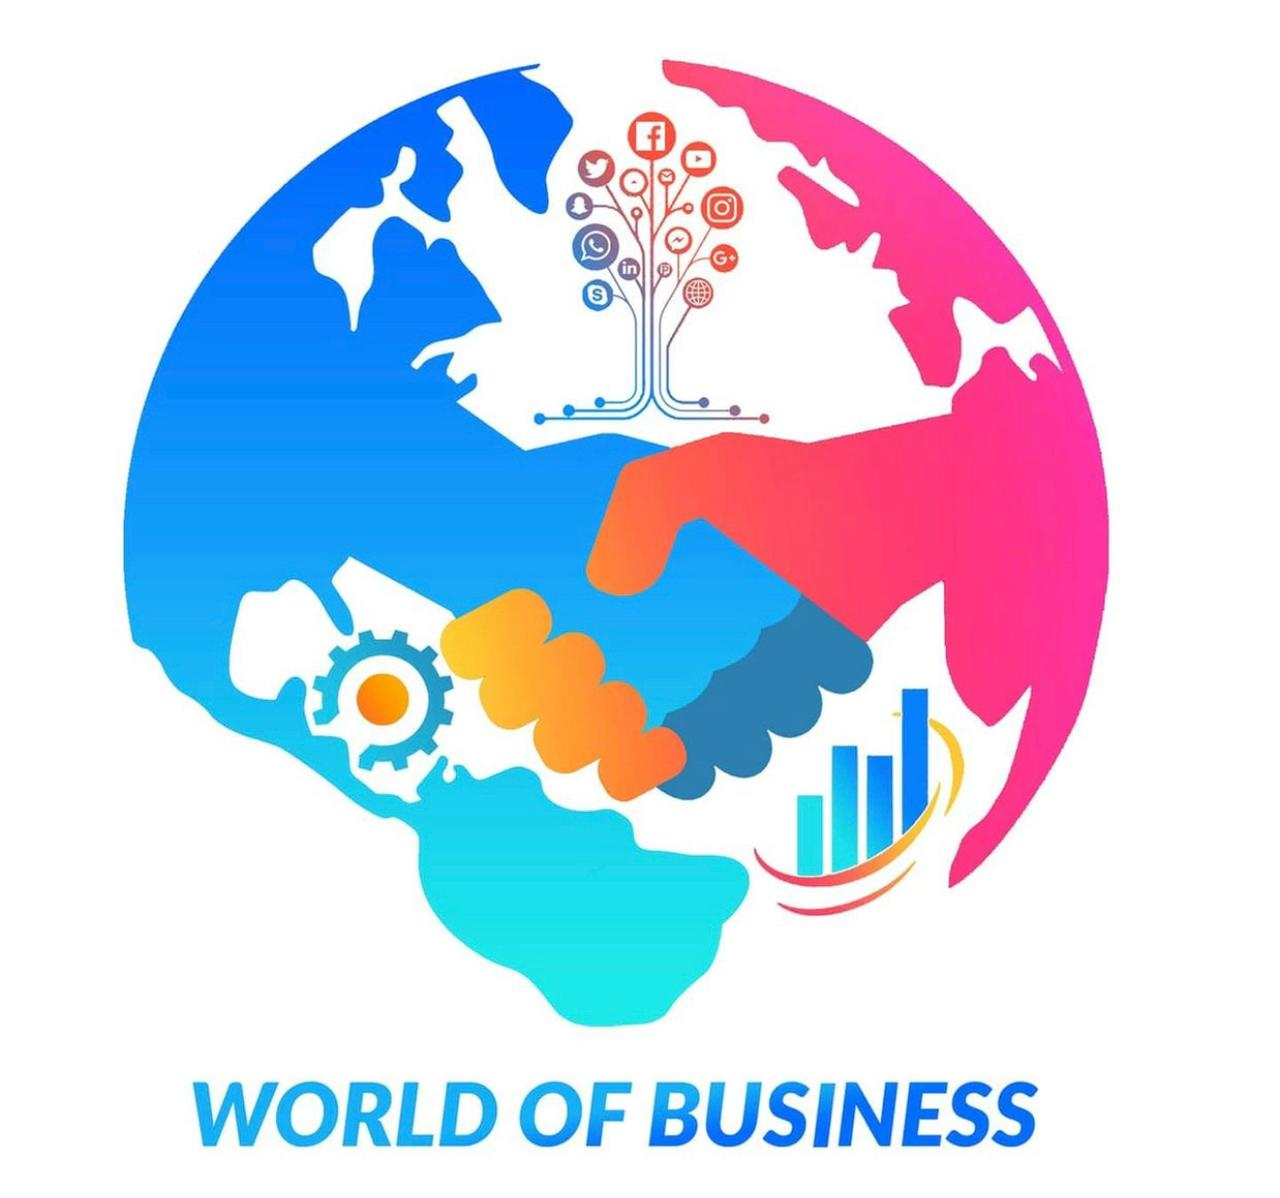 World of business, the Lebanese company is now occupying a global place